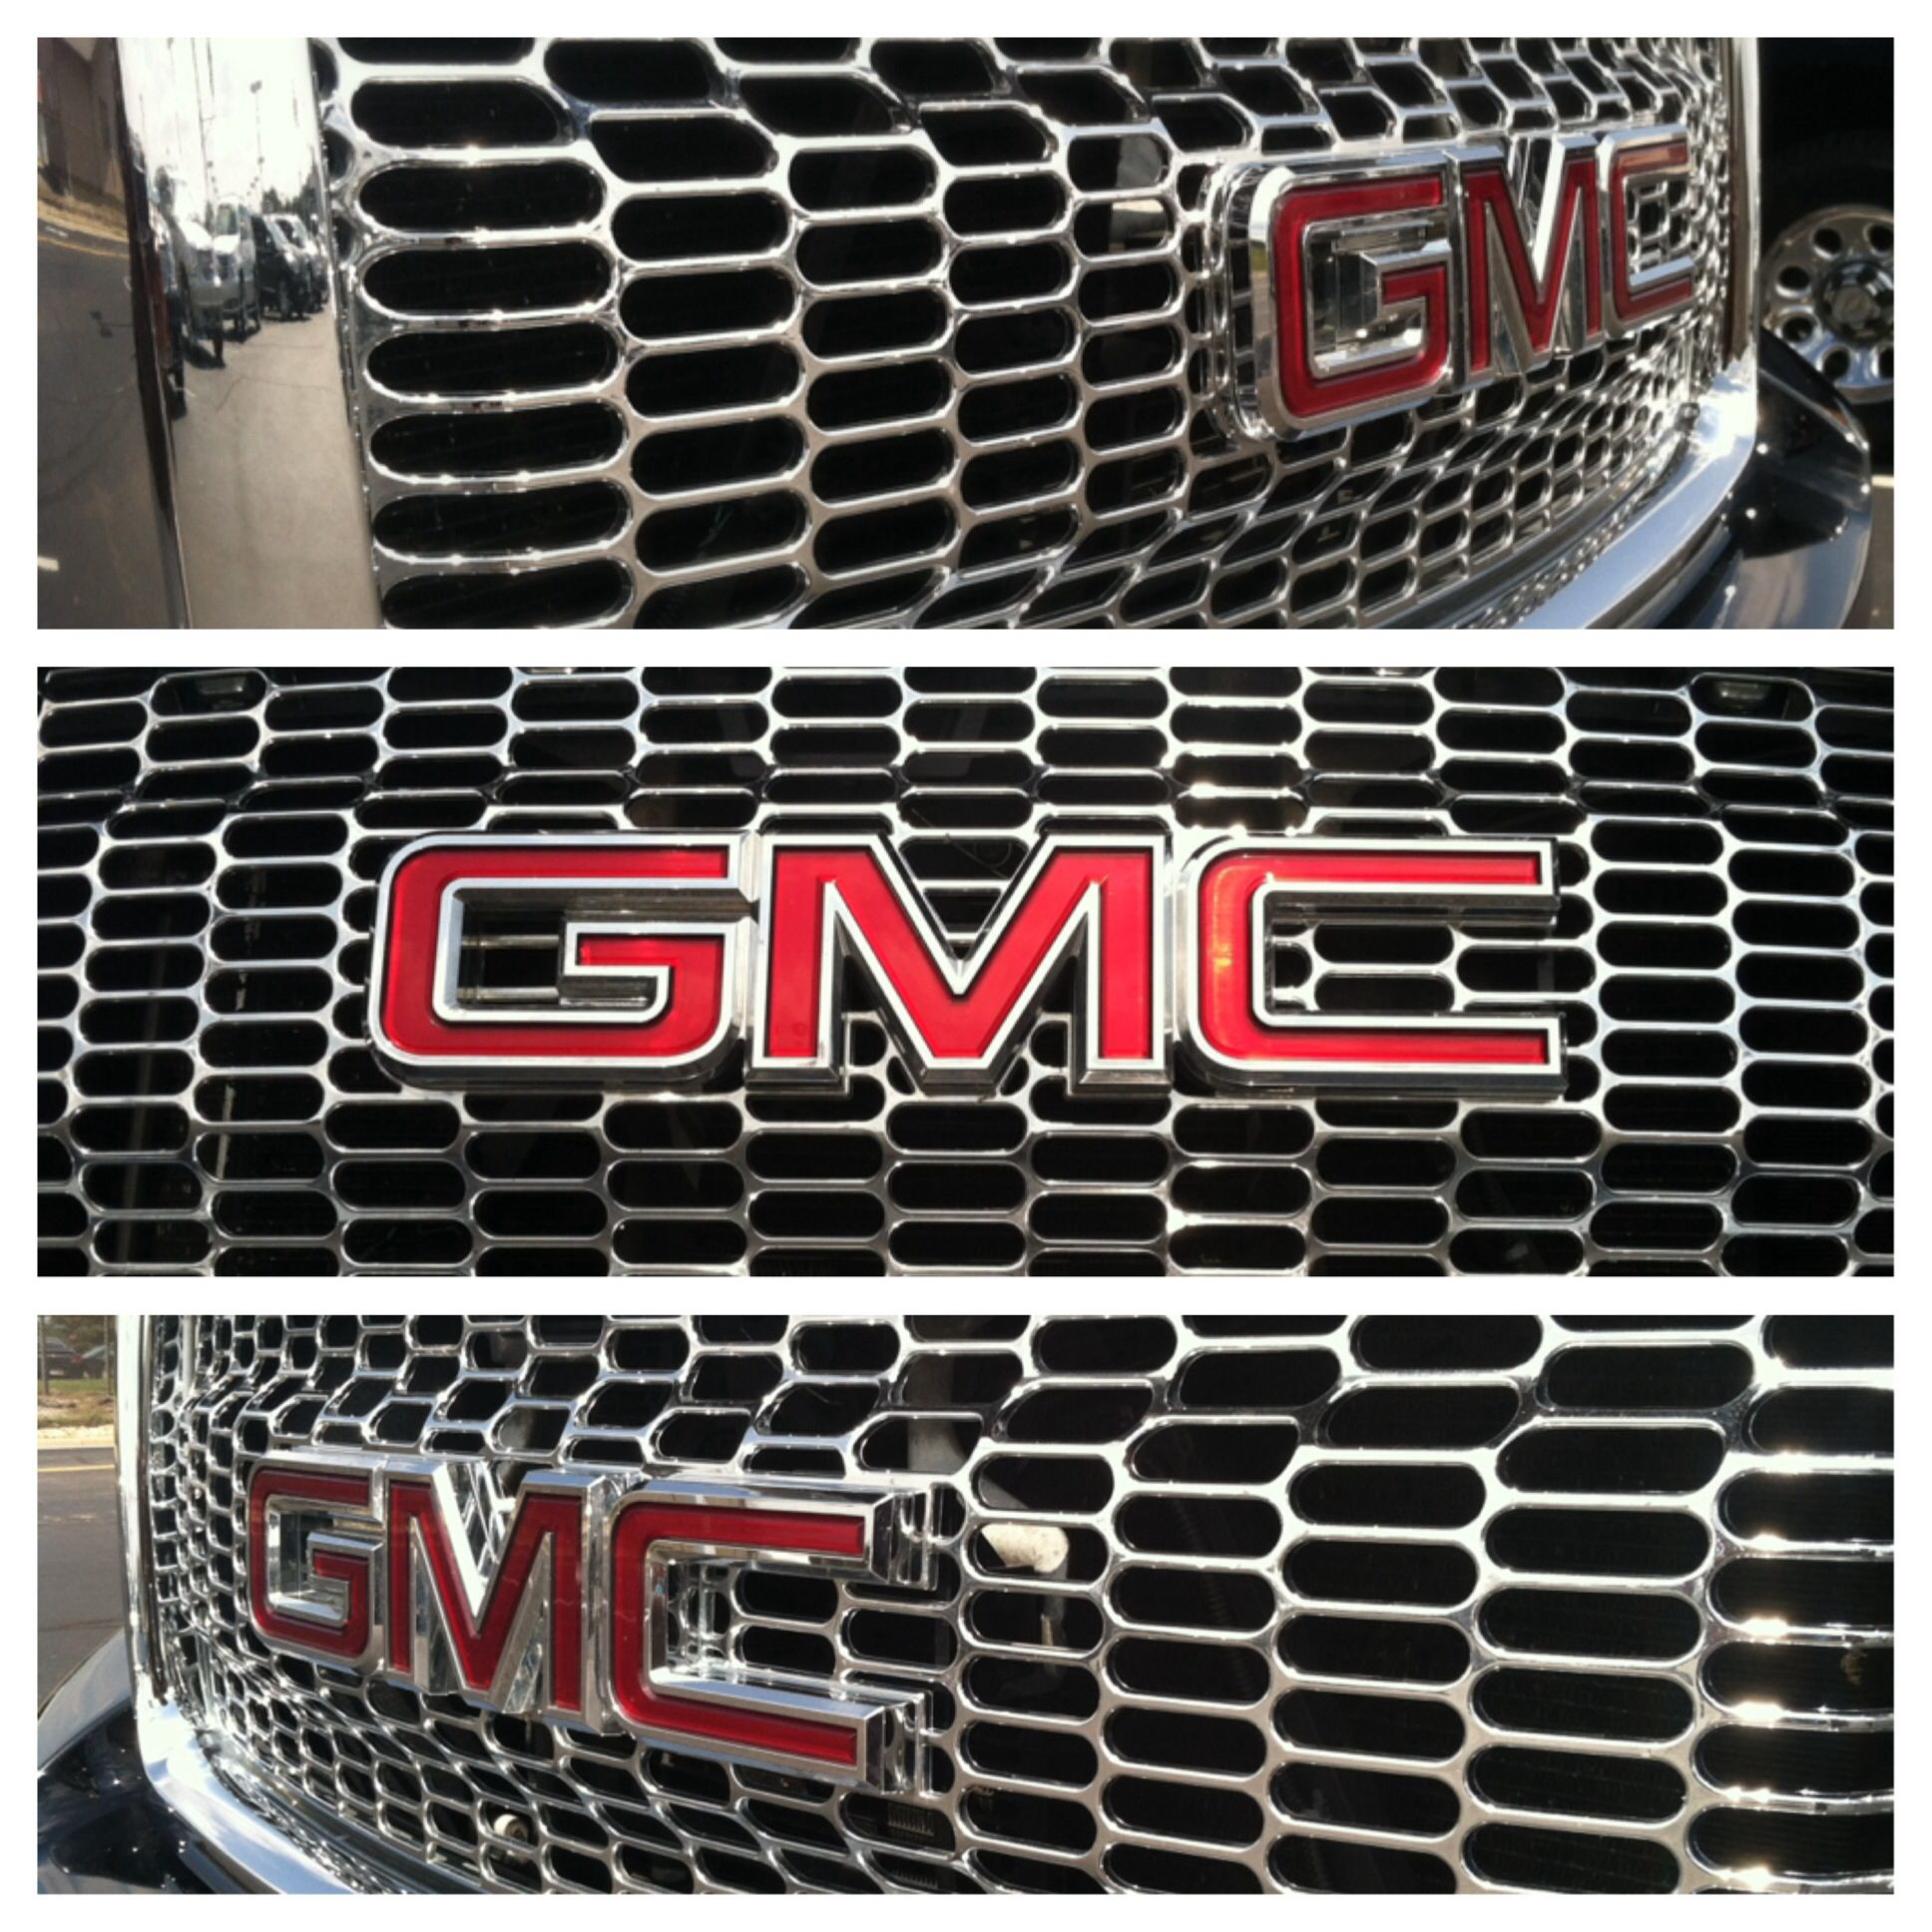 Coolest Truck Grille Ever Gmc Sierra Truck Grilles Cool